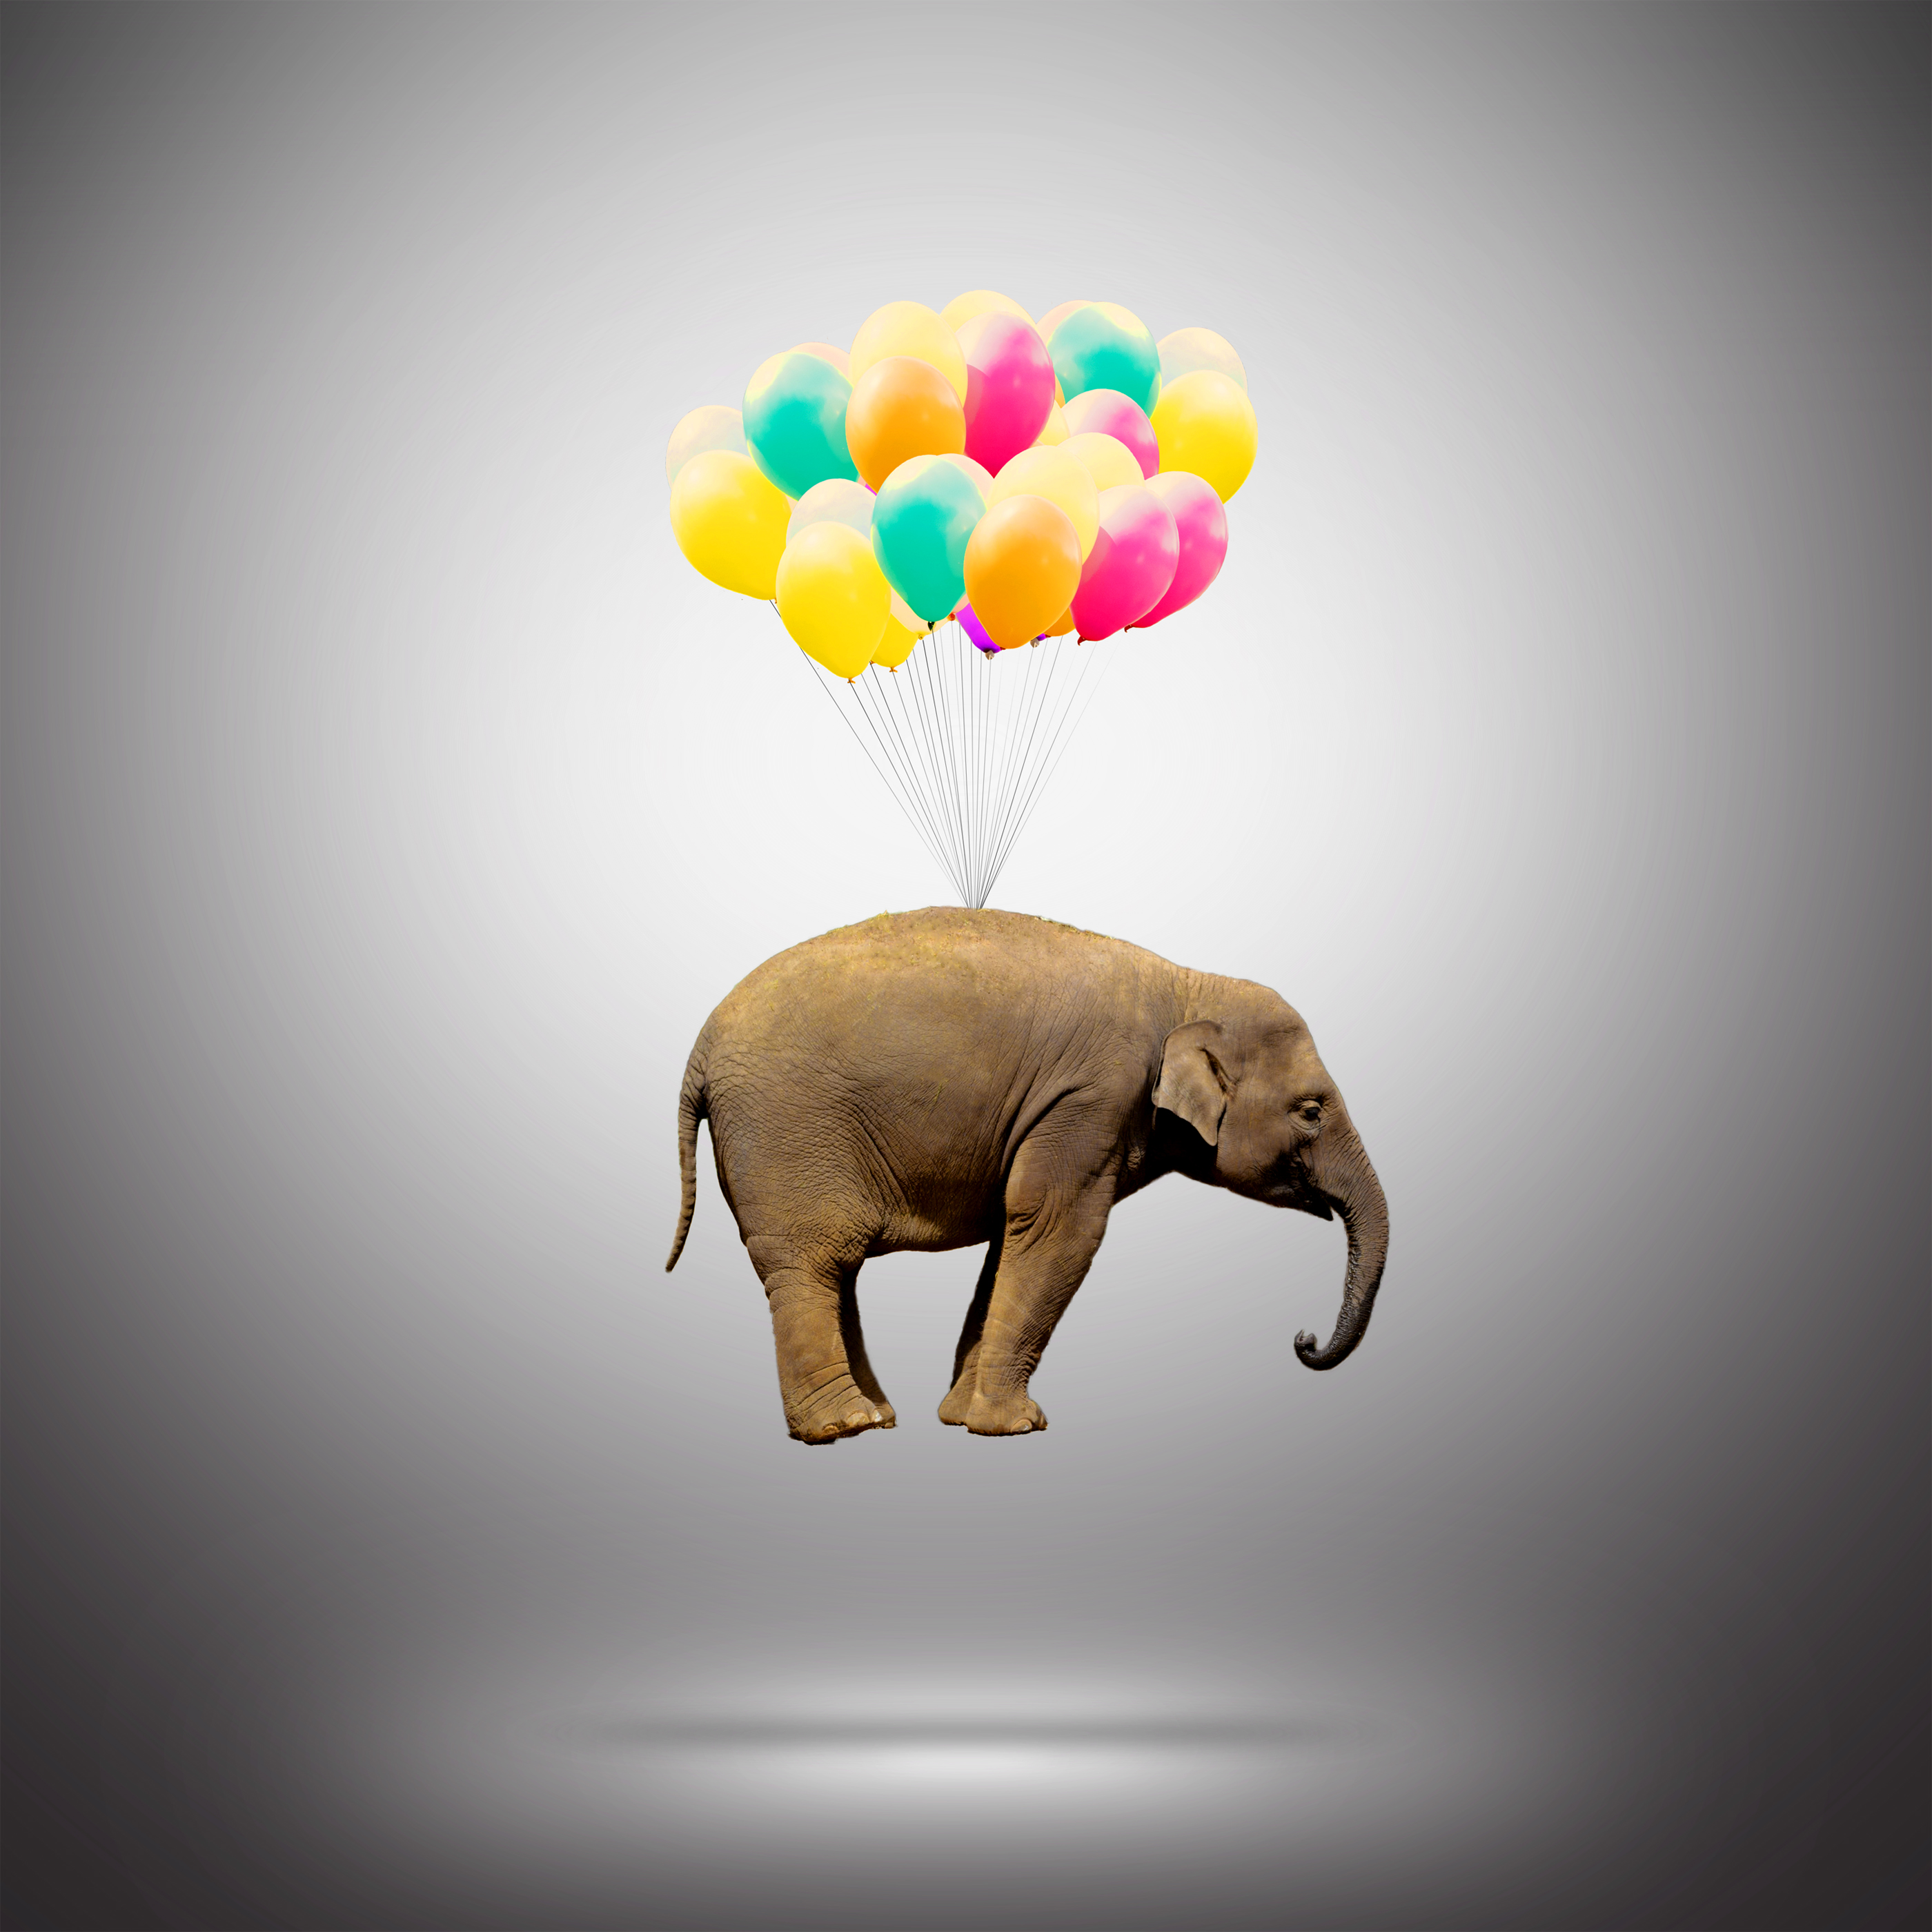 Elephant Lifted by Balloons - Achievement Concept, Abstract, Perfection, Shine, Scene, HQ Photo